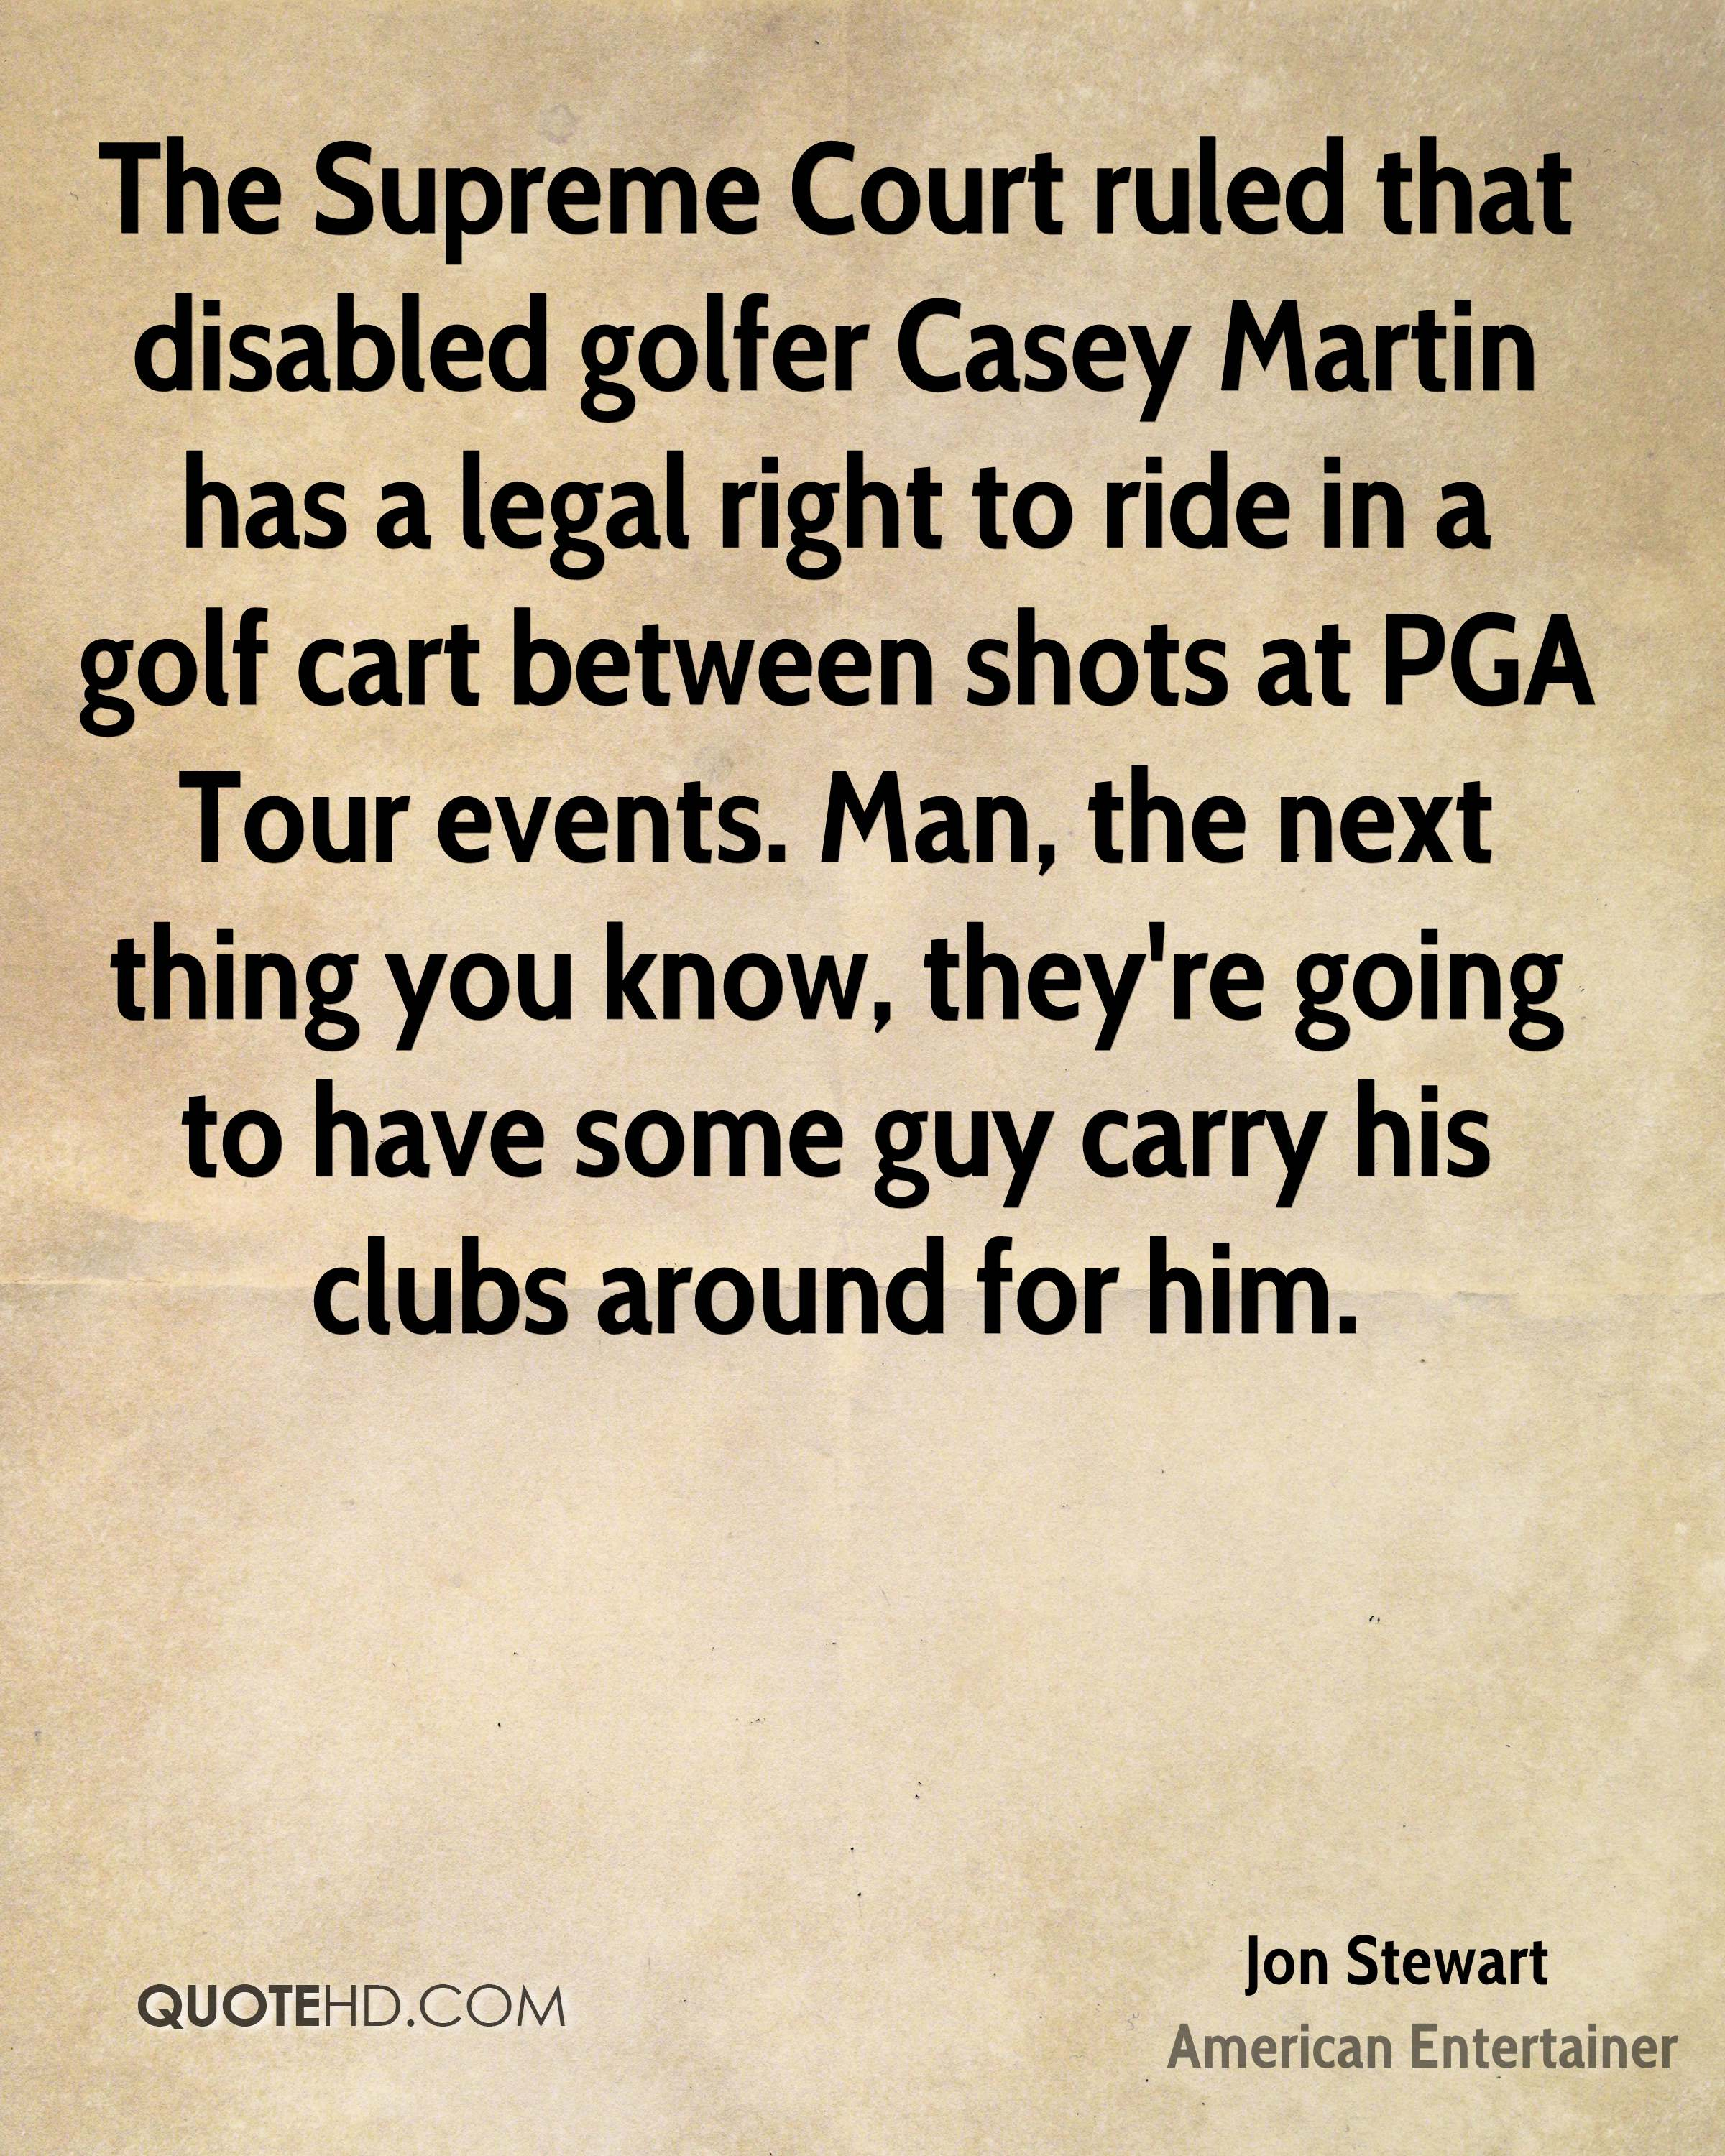 The Supreme Court ruled that disabled golfer Casey Martin has a legal right to ride in a golf cart between shots at PGA Tour events. Man, the next thing you know, they're going to have some guy carry his clubs around for him.